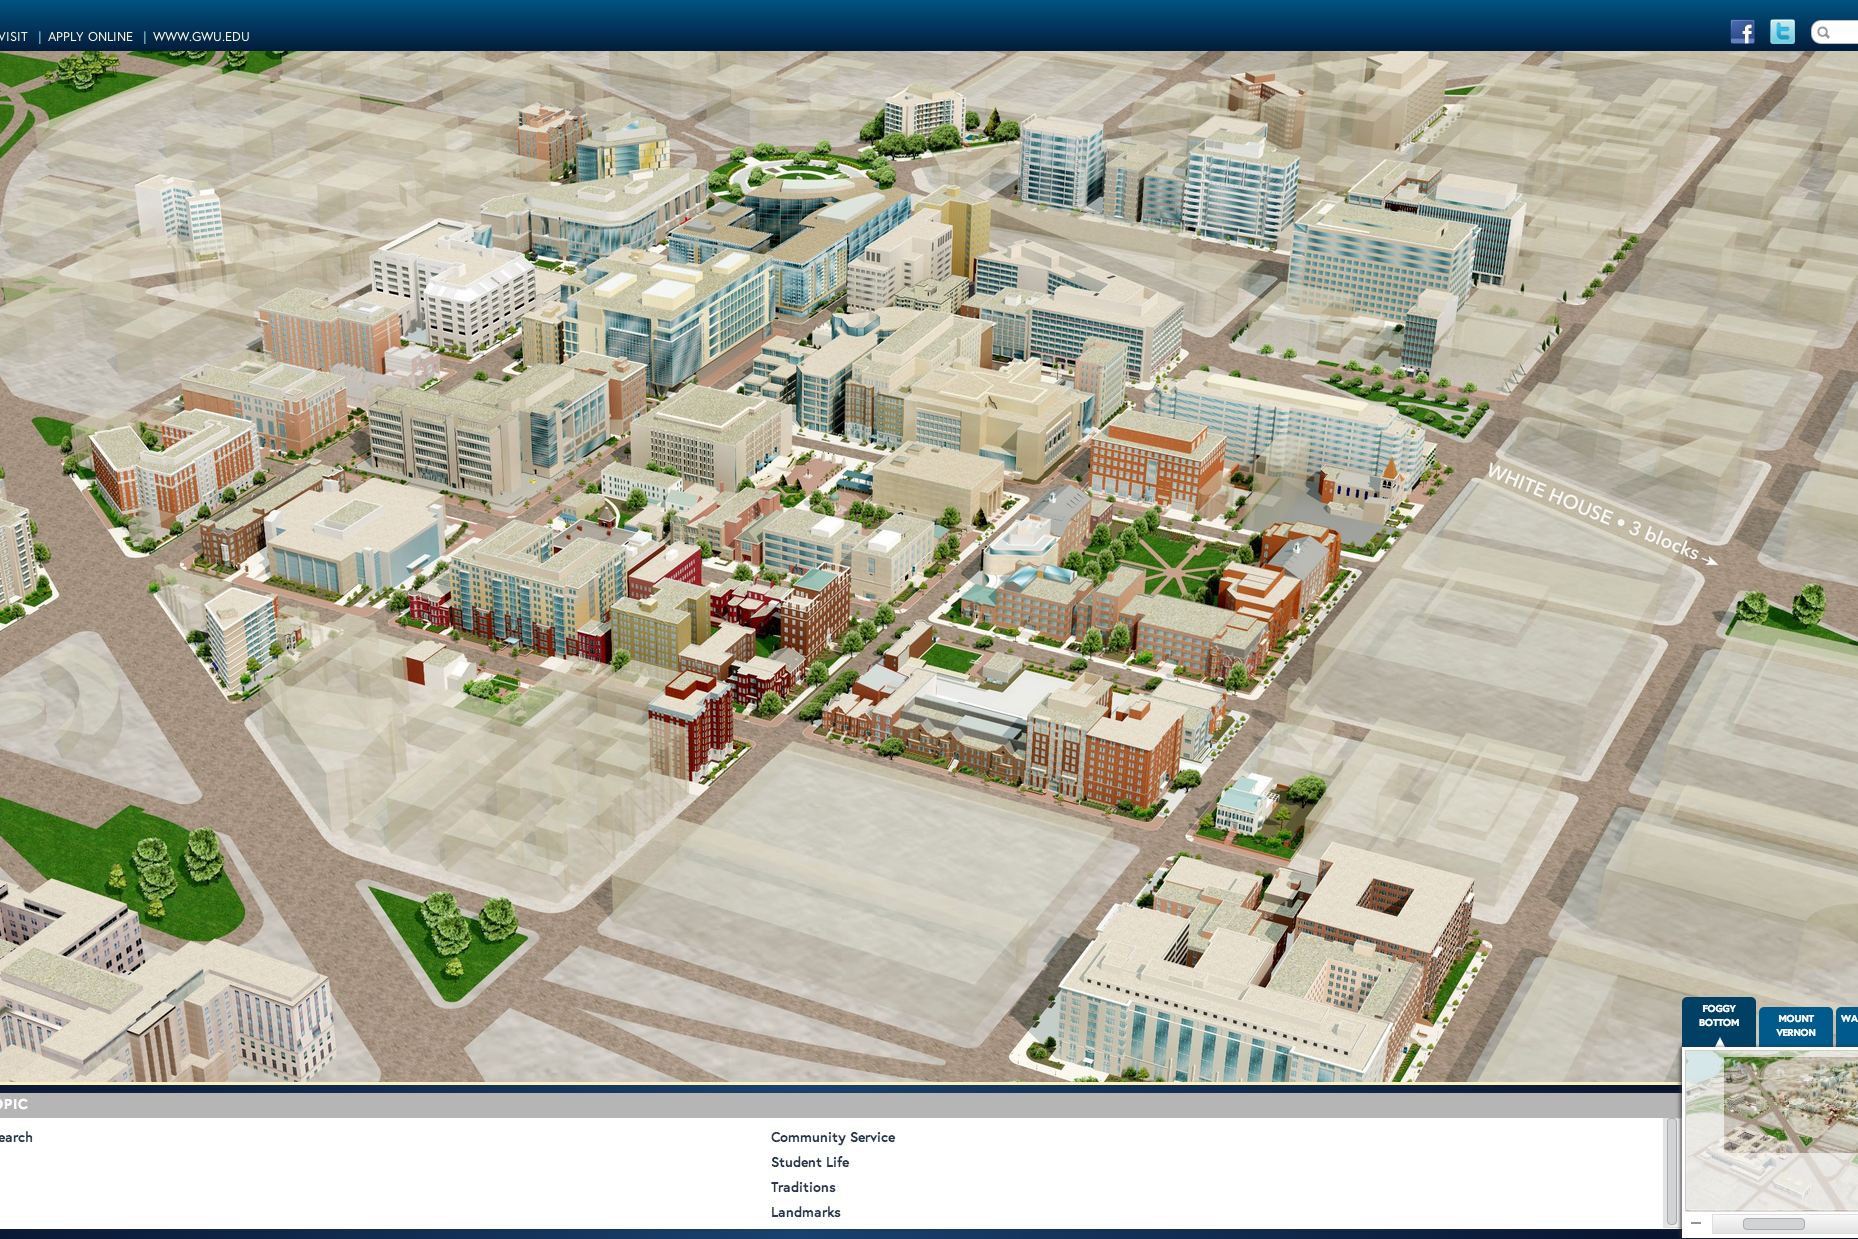 Explore Campus and D.C. With the GW Virtual Tour | GW Today | The ...